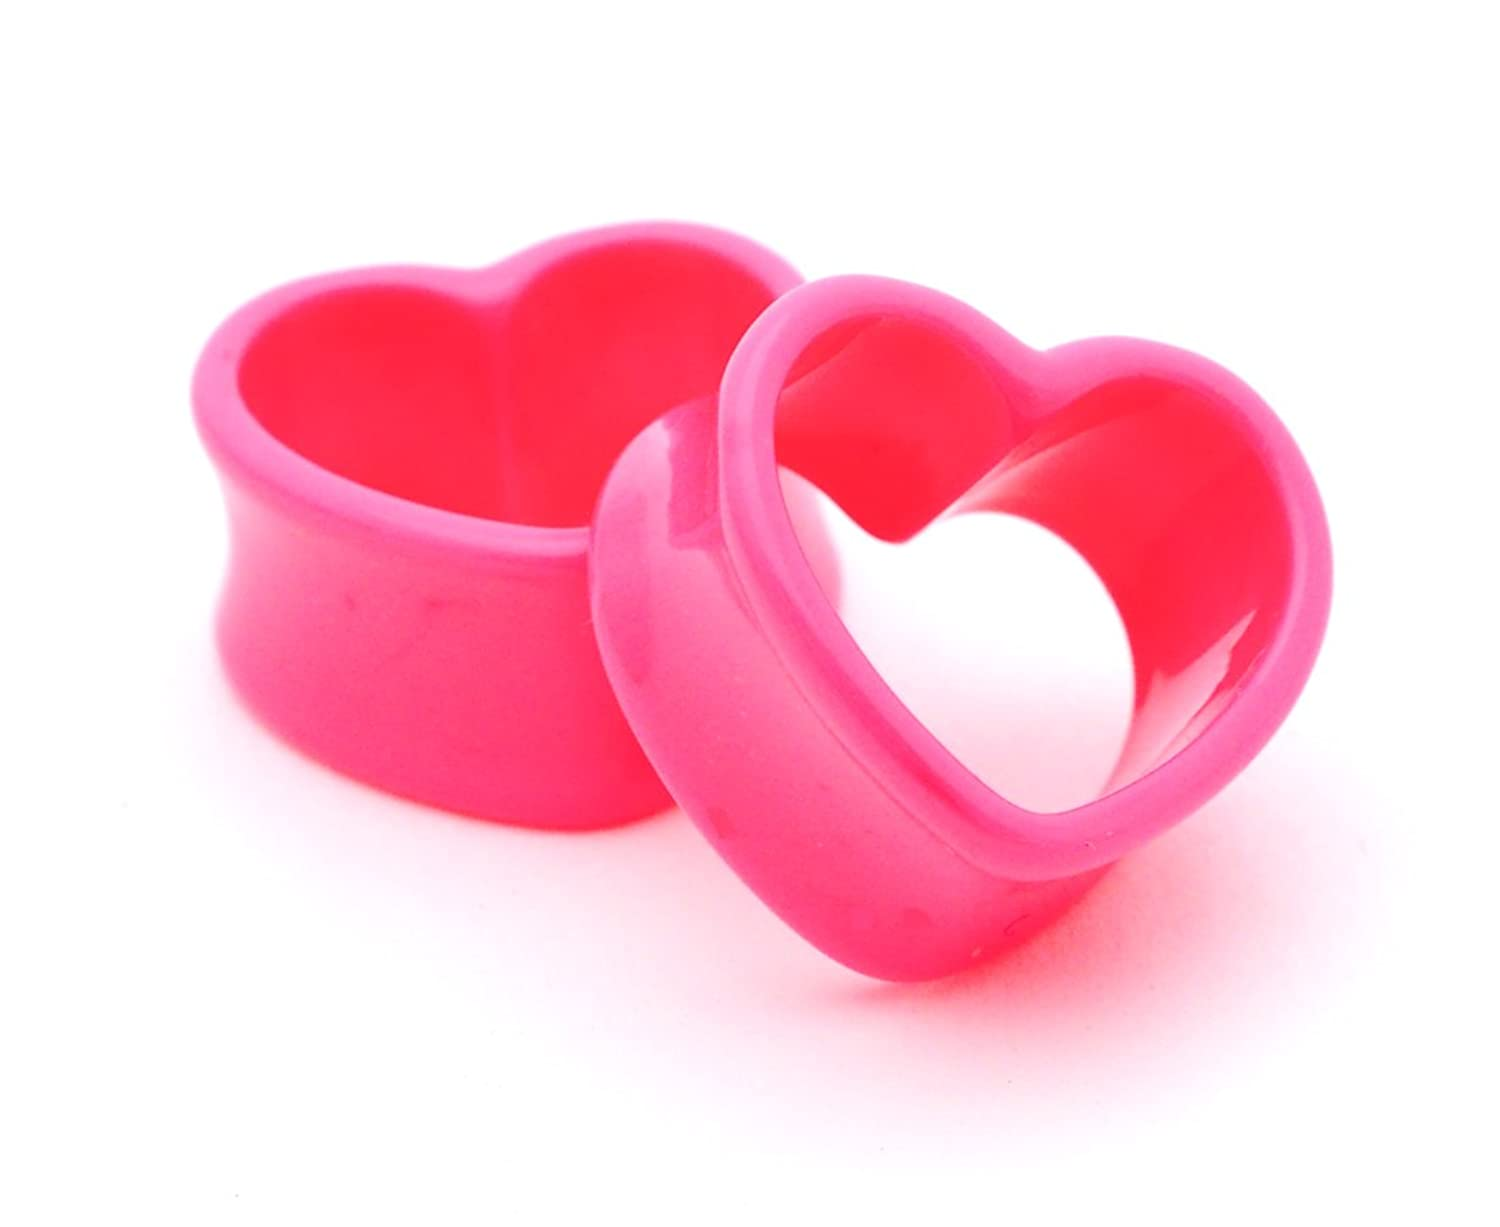 Pink Acrylic Heart Tunnels - 5/8 - 16mm - Sold As a Pair the tunnels